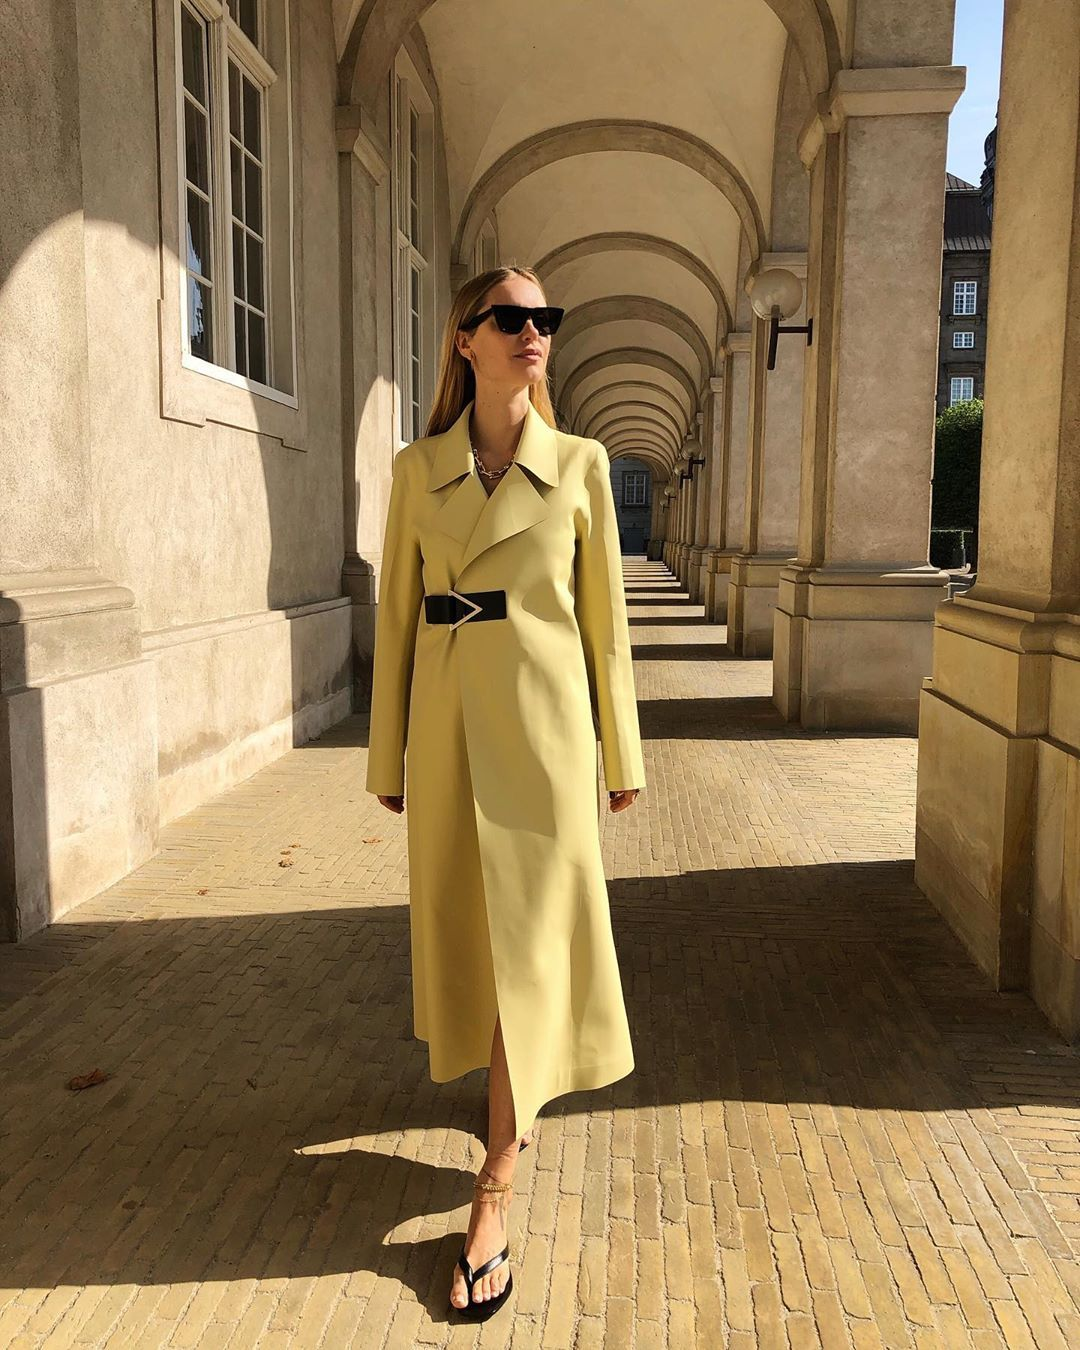 pernille-teisbaek-bottega-veneta-pale-yellow-rubber-trench-coat